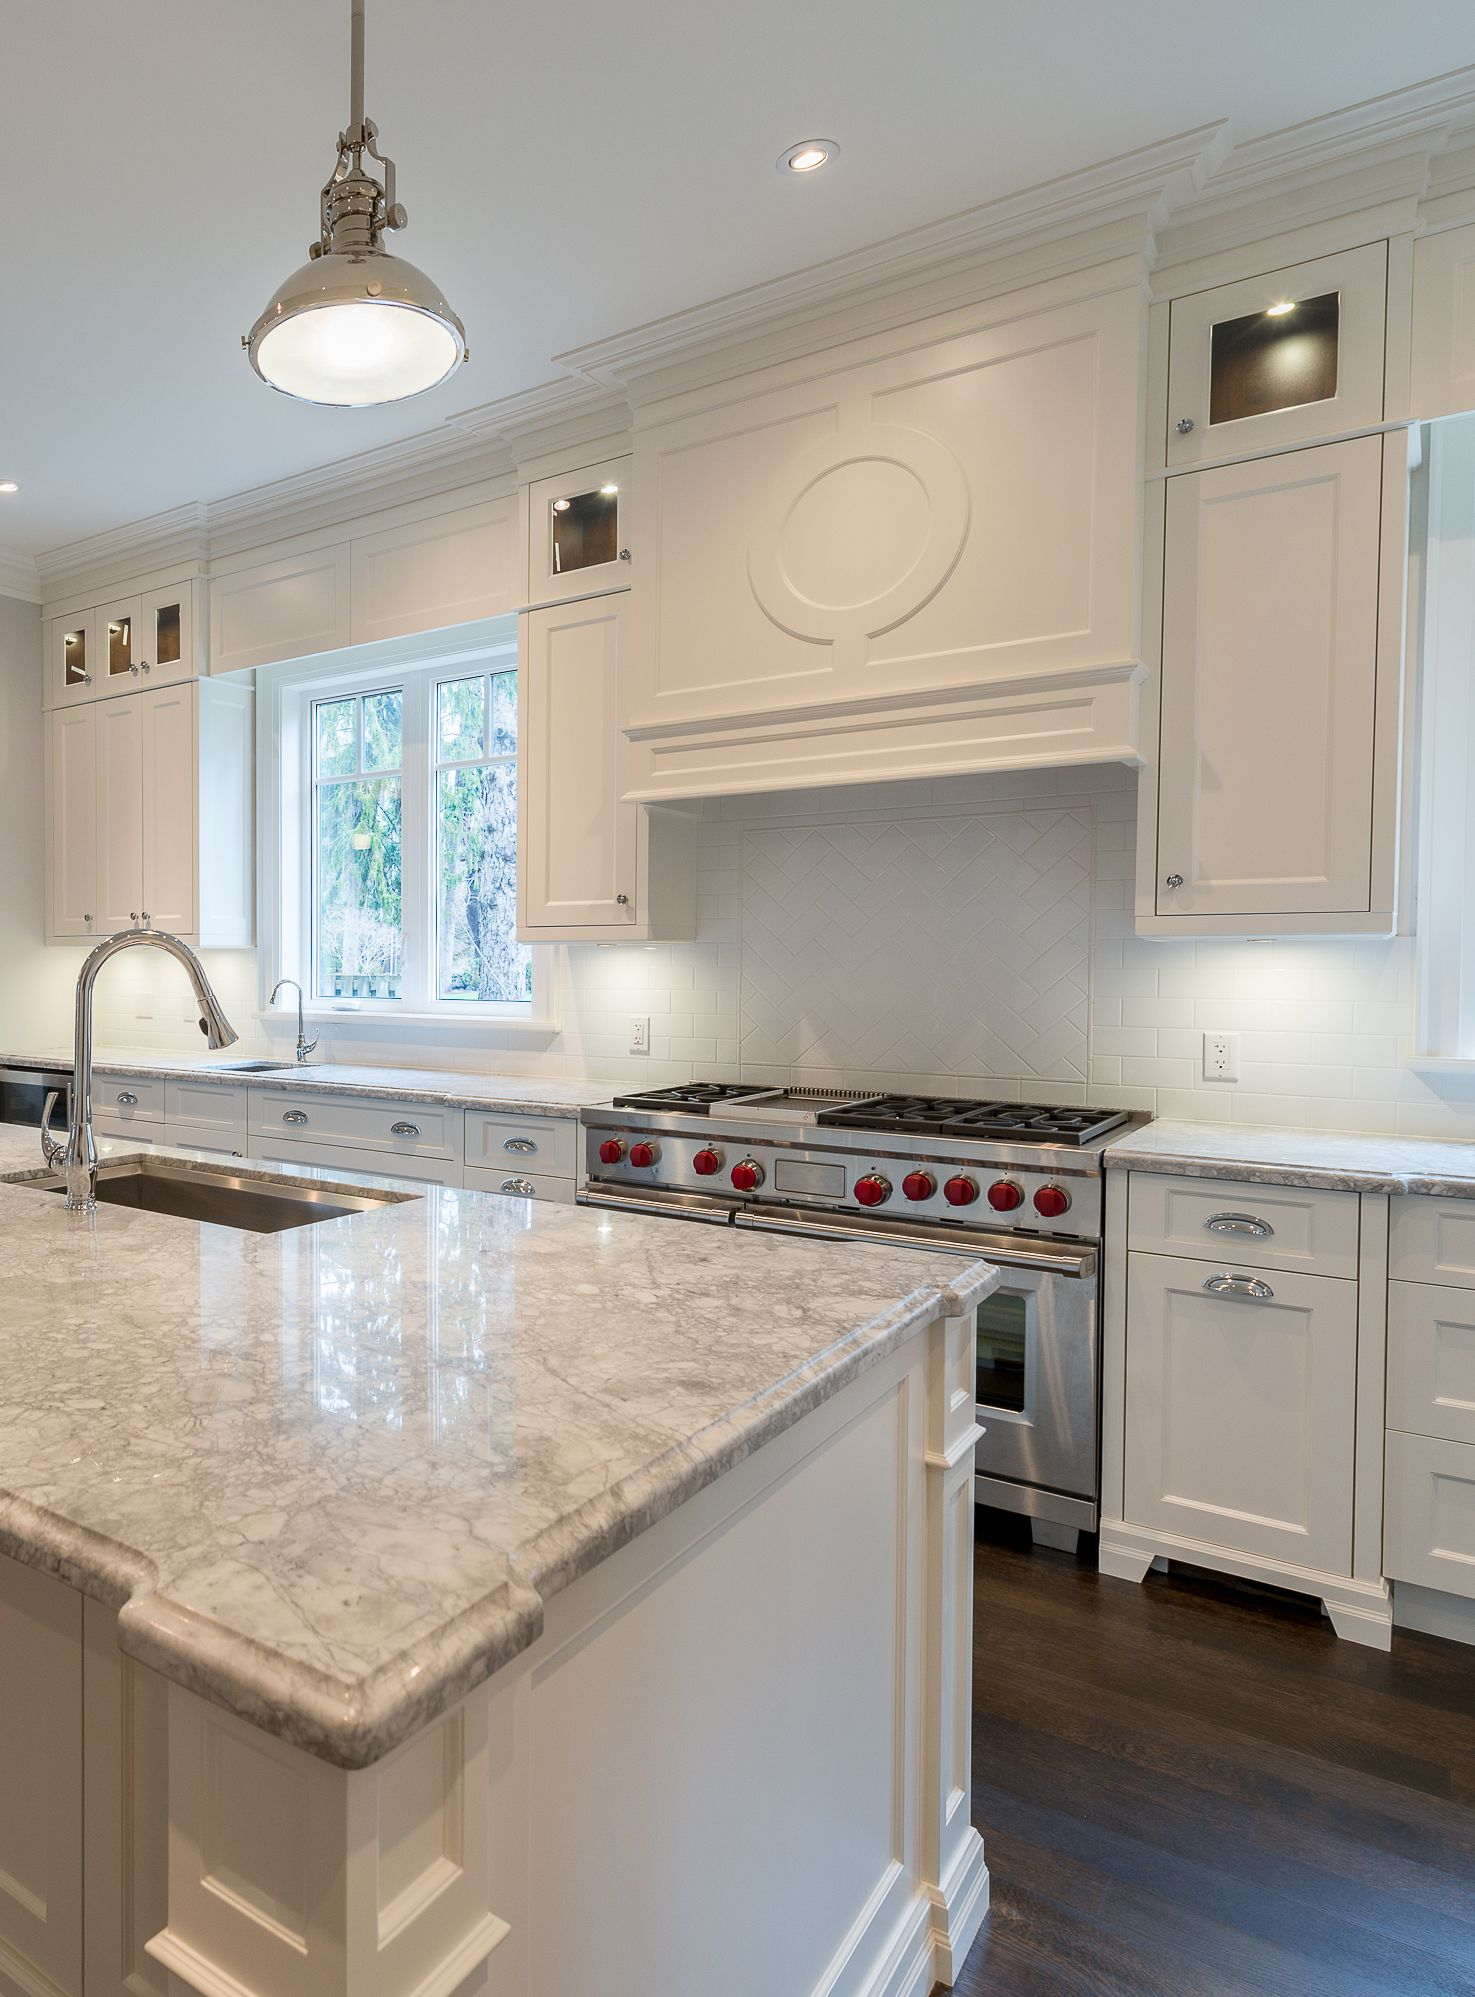 Super White Granite Kitchen White Kitchen Ideas Super White Granite Cc40 Cloud White